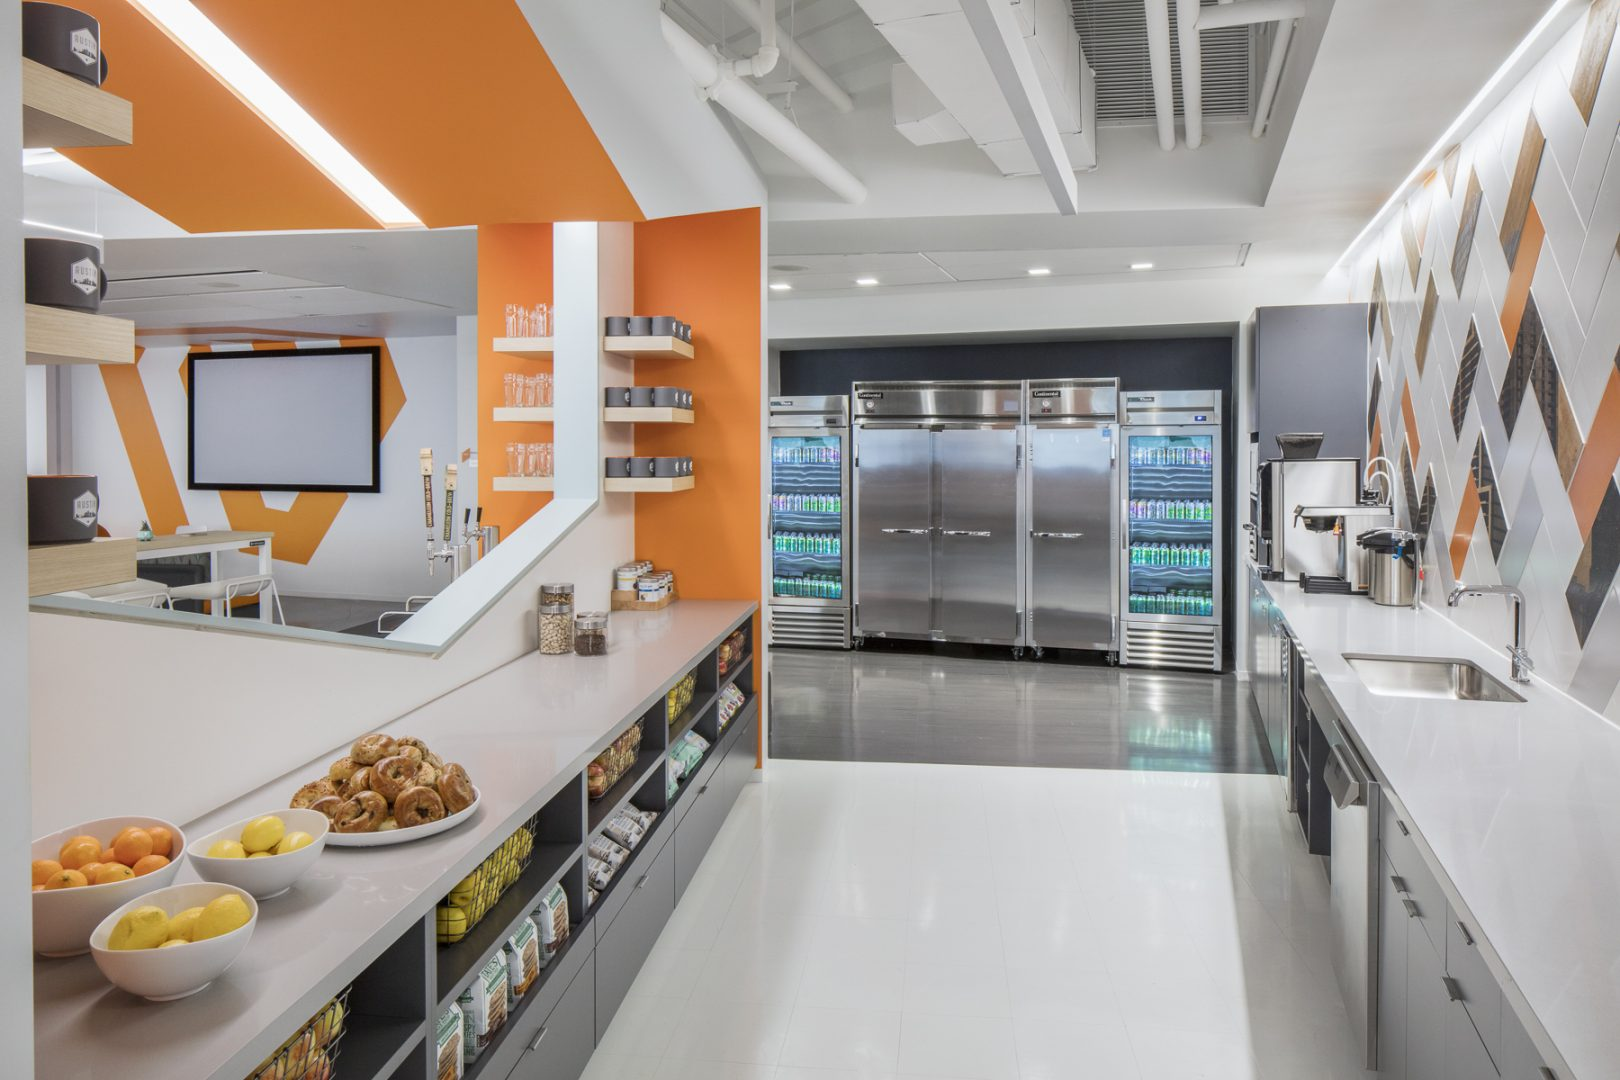 Corporate Technology Interior Design Magento Austin Breakroom Snack Bar Refrgerator Bank